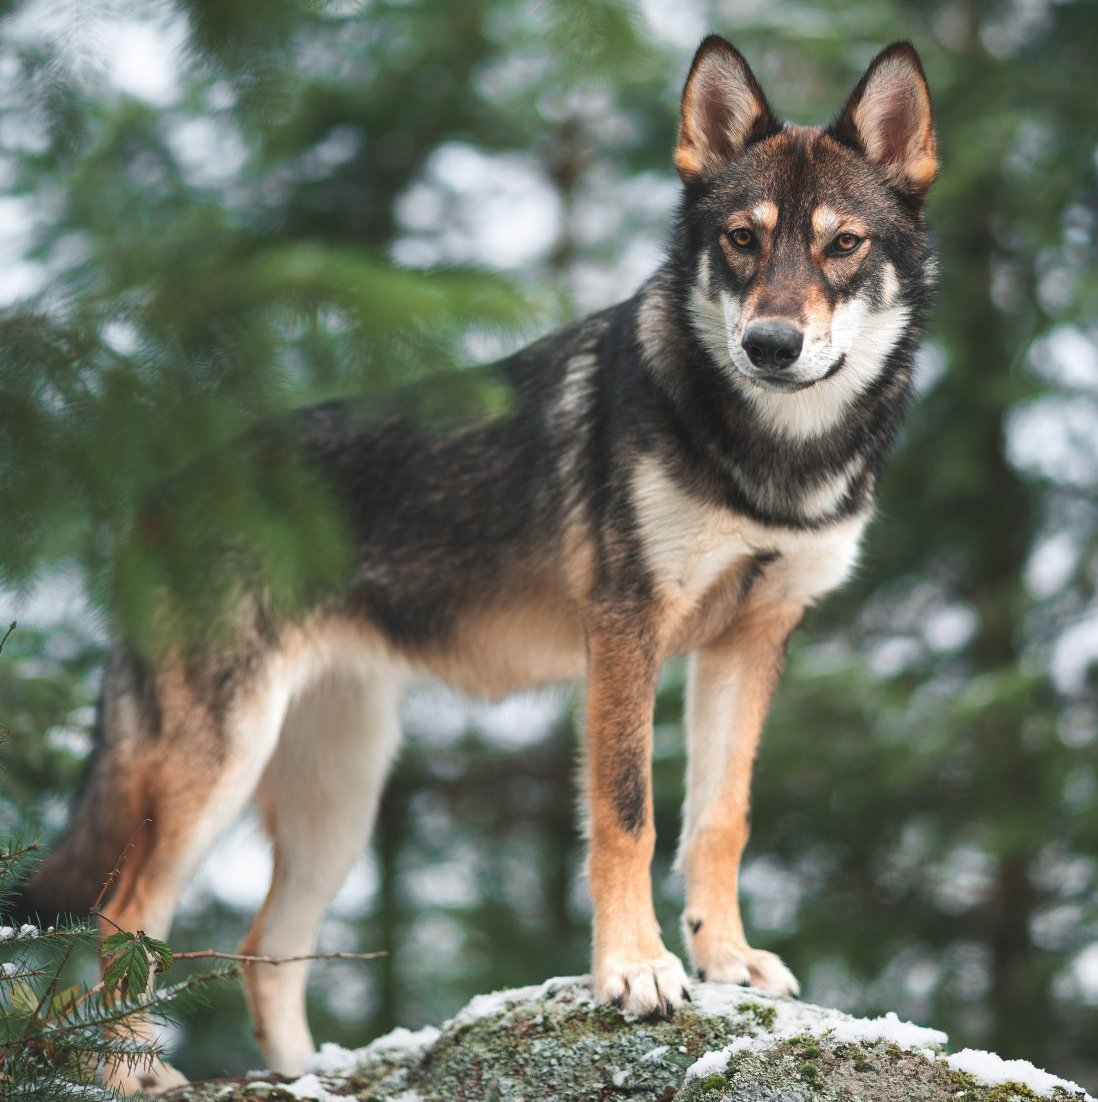 Student Report on Wolves